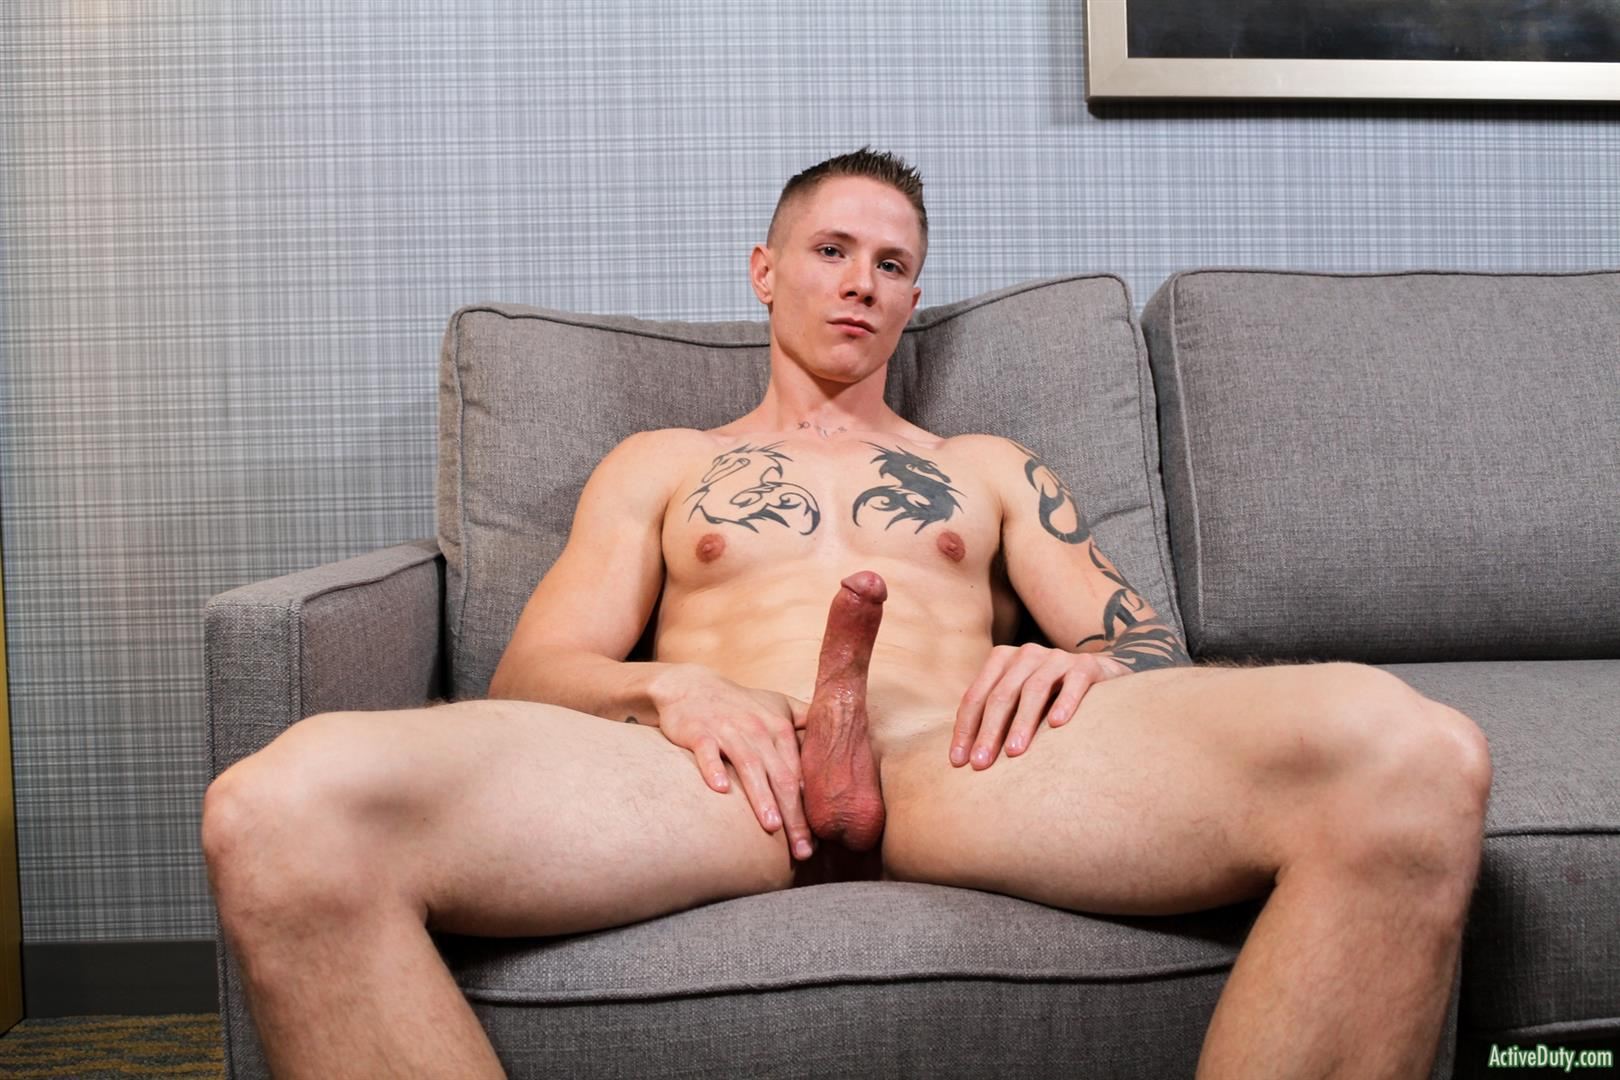 ActiveDuty-Guy-Houston-Naked-Army-Guy-Jerking-Off-Amateur-Gay-Porn-08 Straight Army Soldier Auditions For Gay Porn And Blows A Load